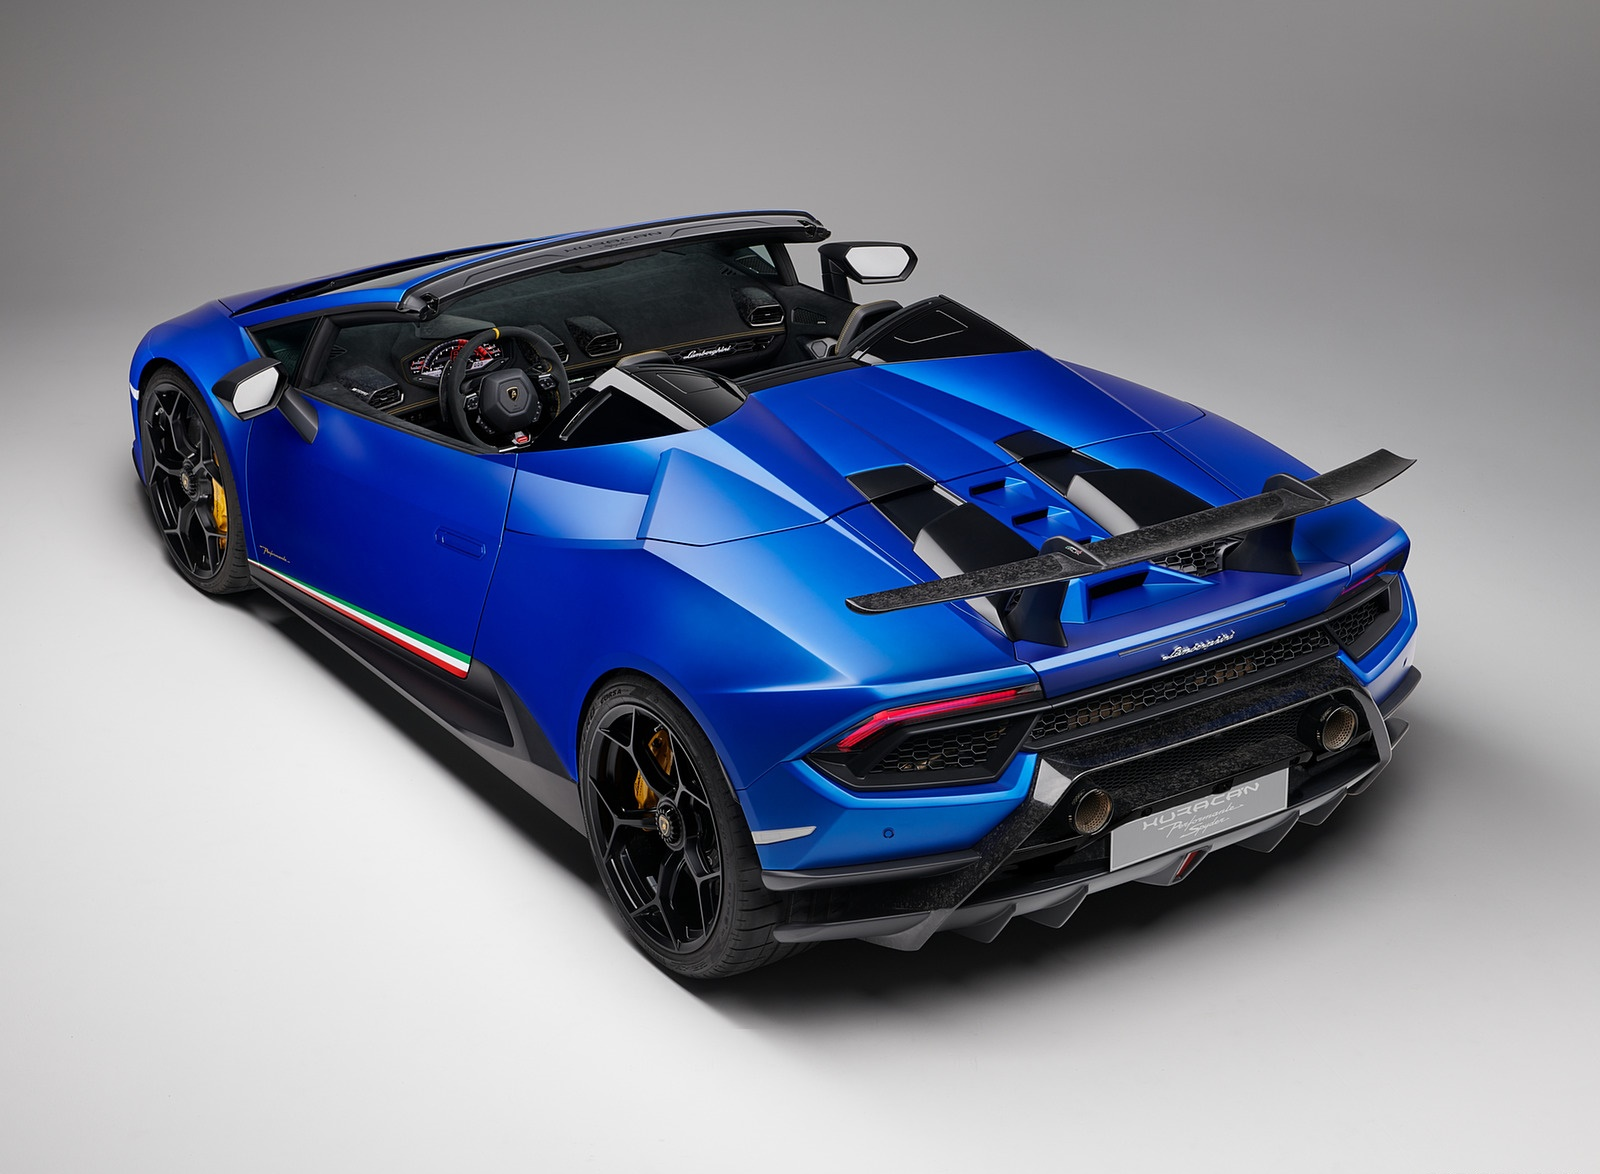 2019 Lamborghini Huracan Performante Spyder Rear Three Quarter